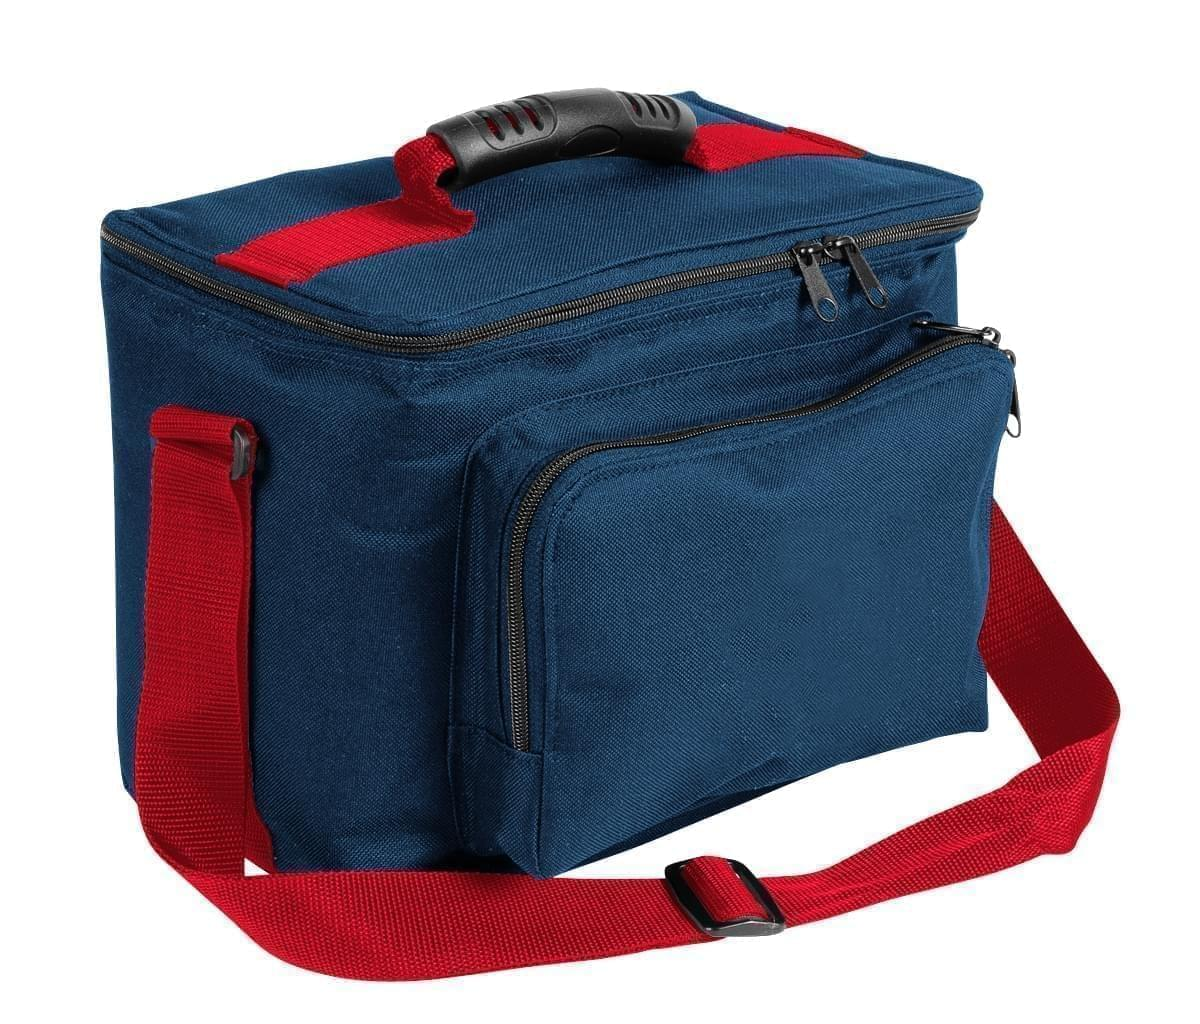 USA Made Nylon Poly Lunch Coolers, Navy-Red, 11001161-AW2